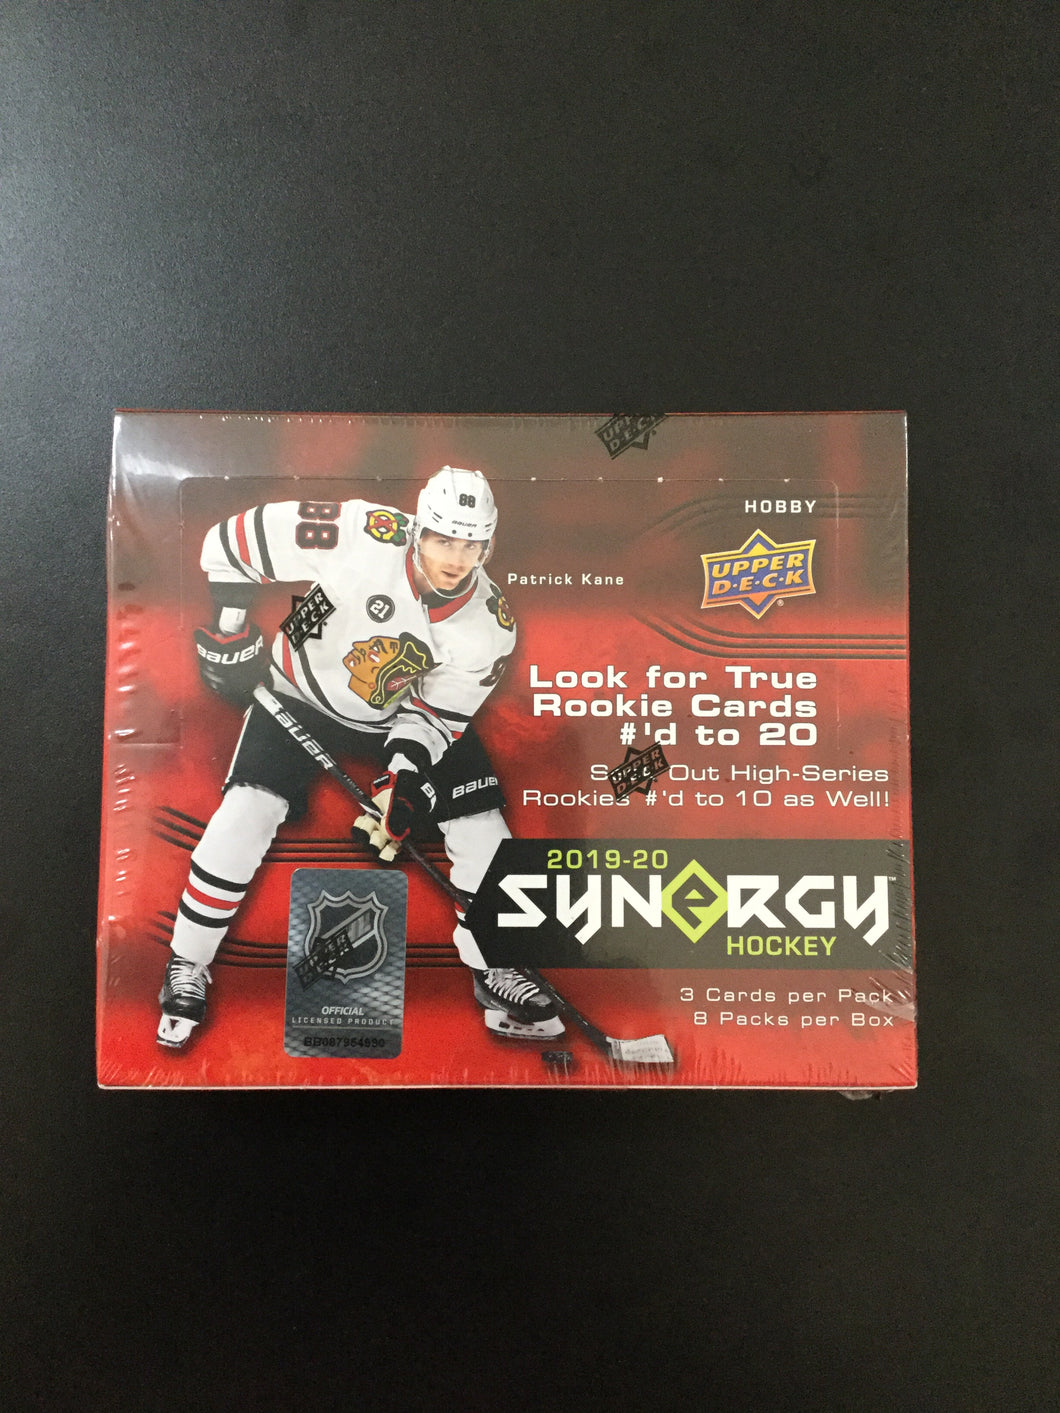 2019-20 Upper Deck Synergy Hockey Hobby Box